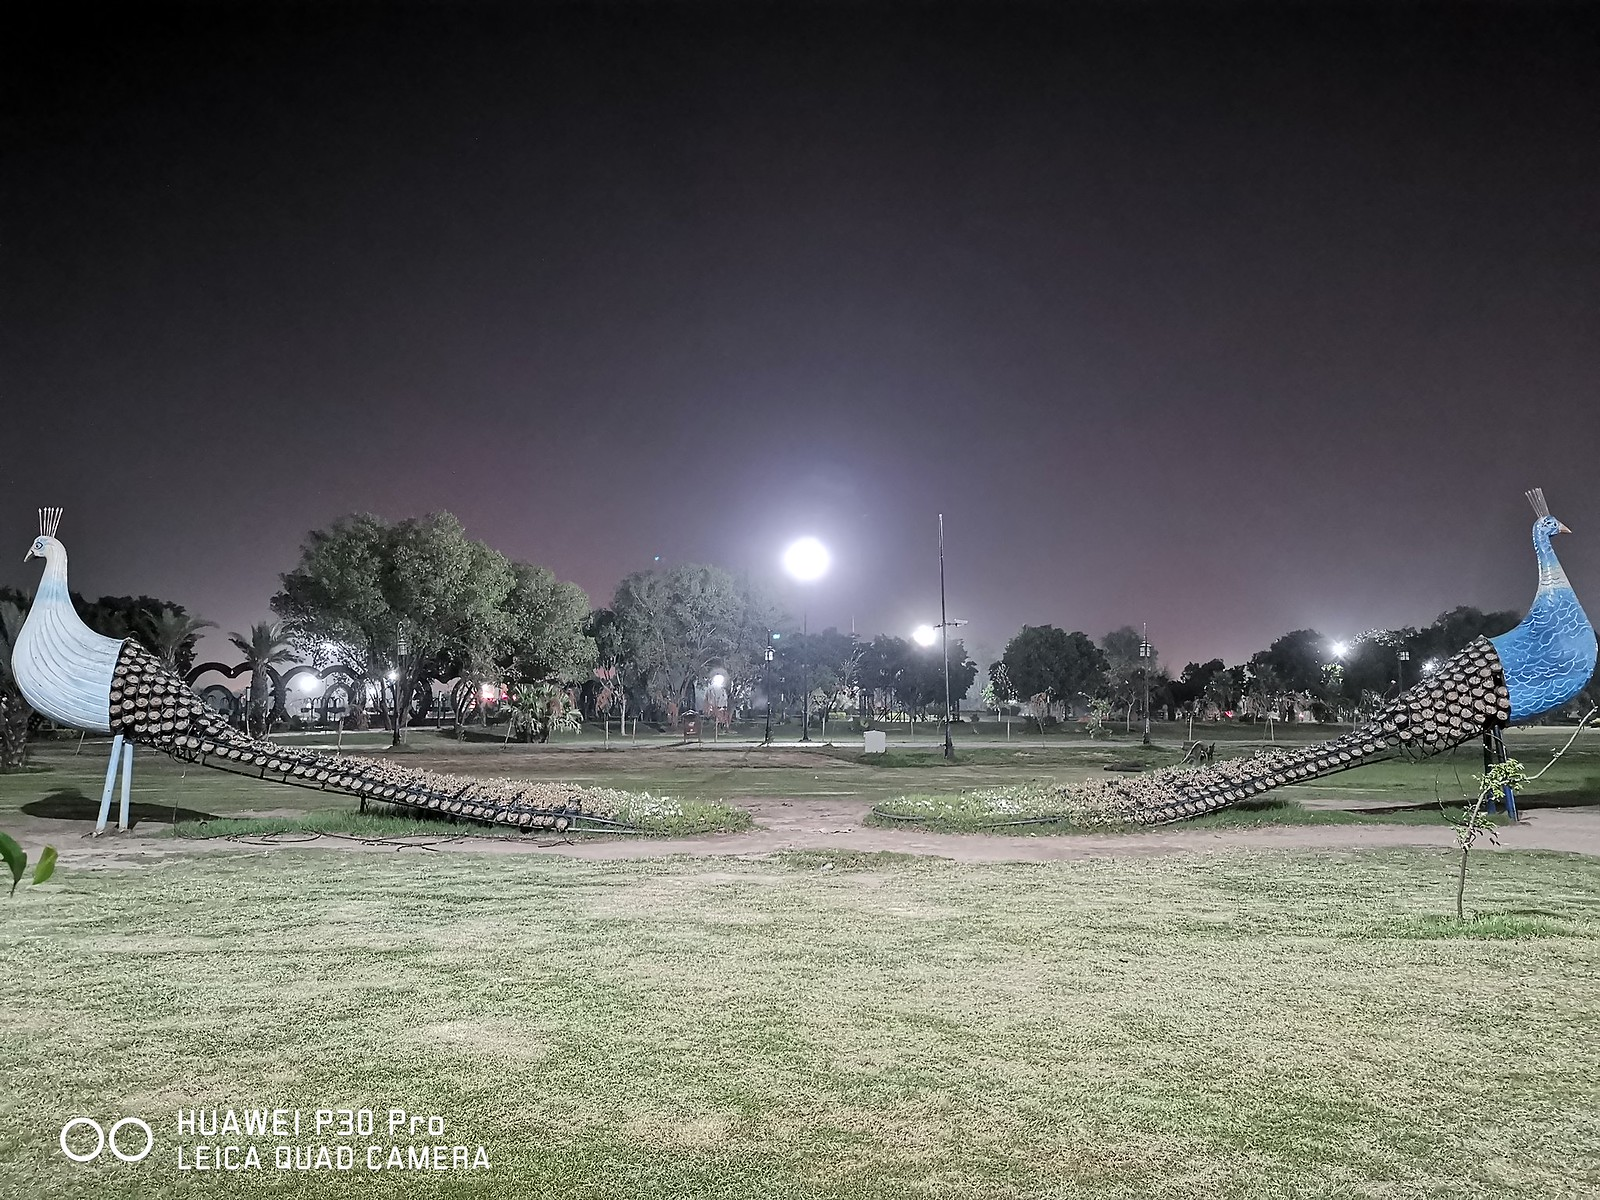 Park Picture at night with Auto mode on Huawei P30 Pro